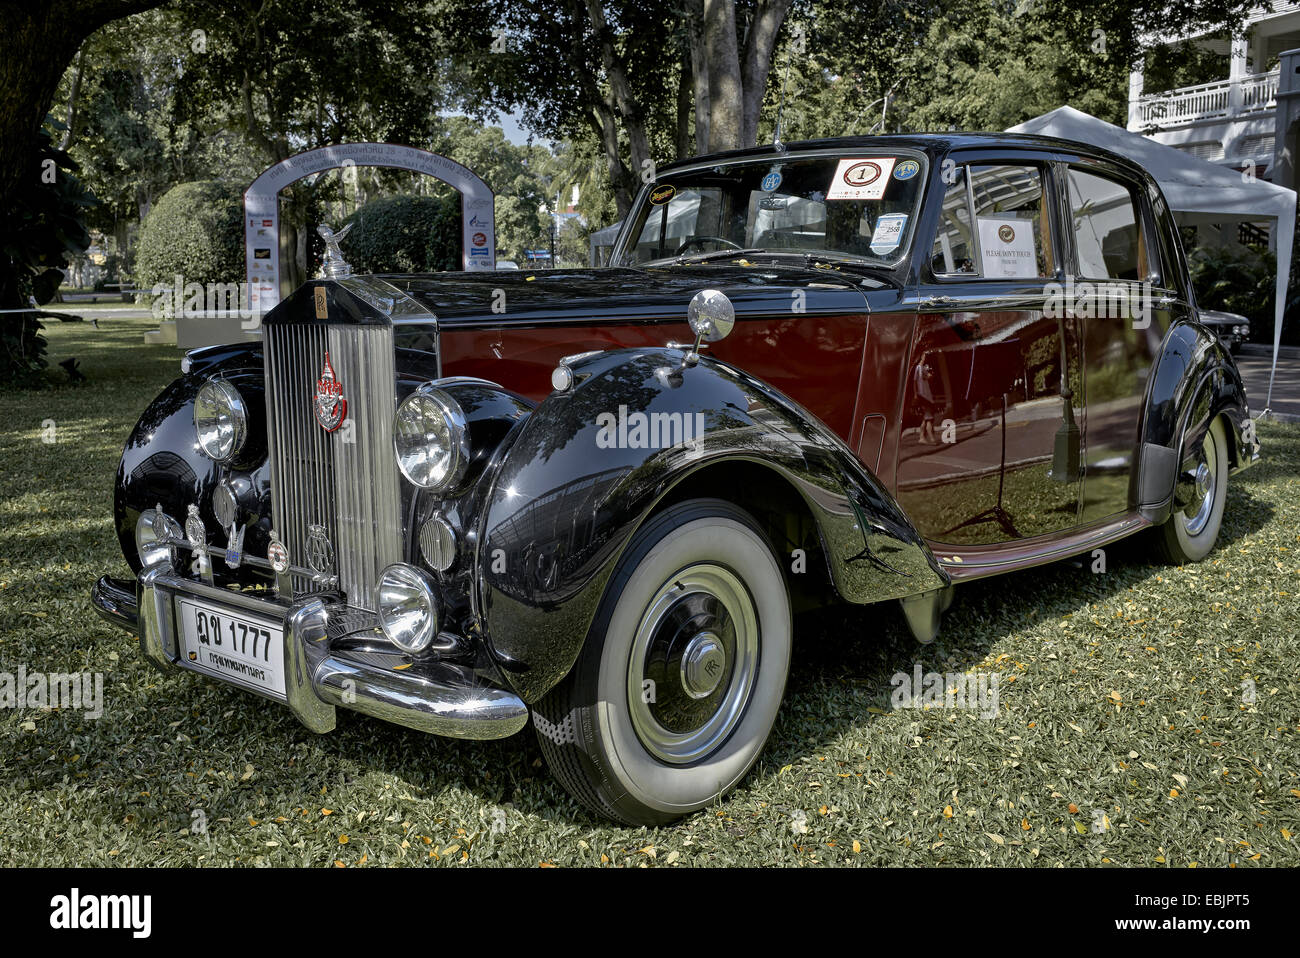 Rolls royce silver dawn limousine 1951 classic british executive motorcar first in class concours d elegance winner